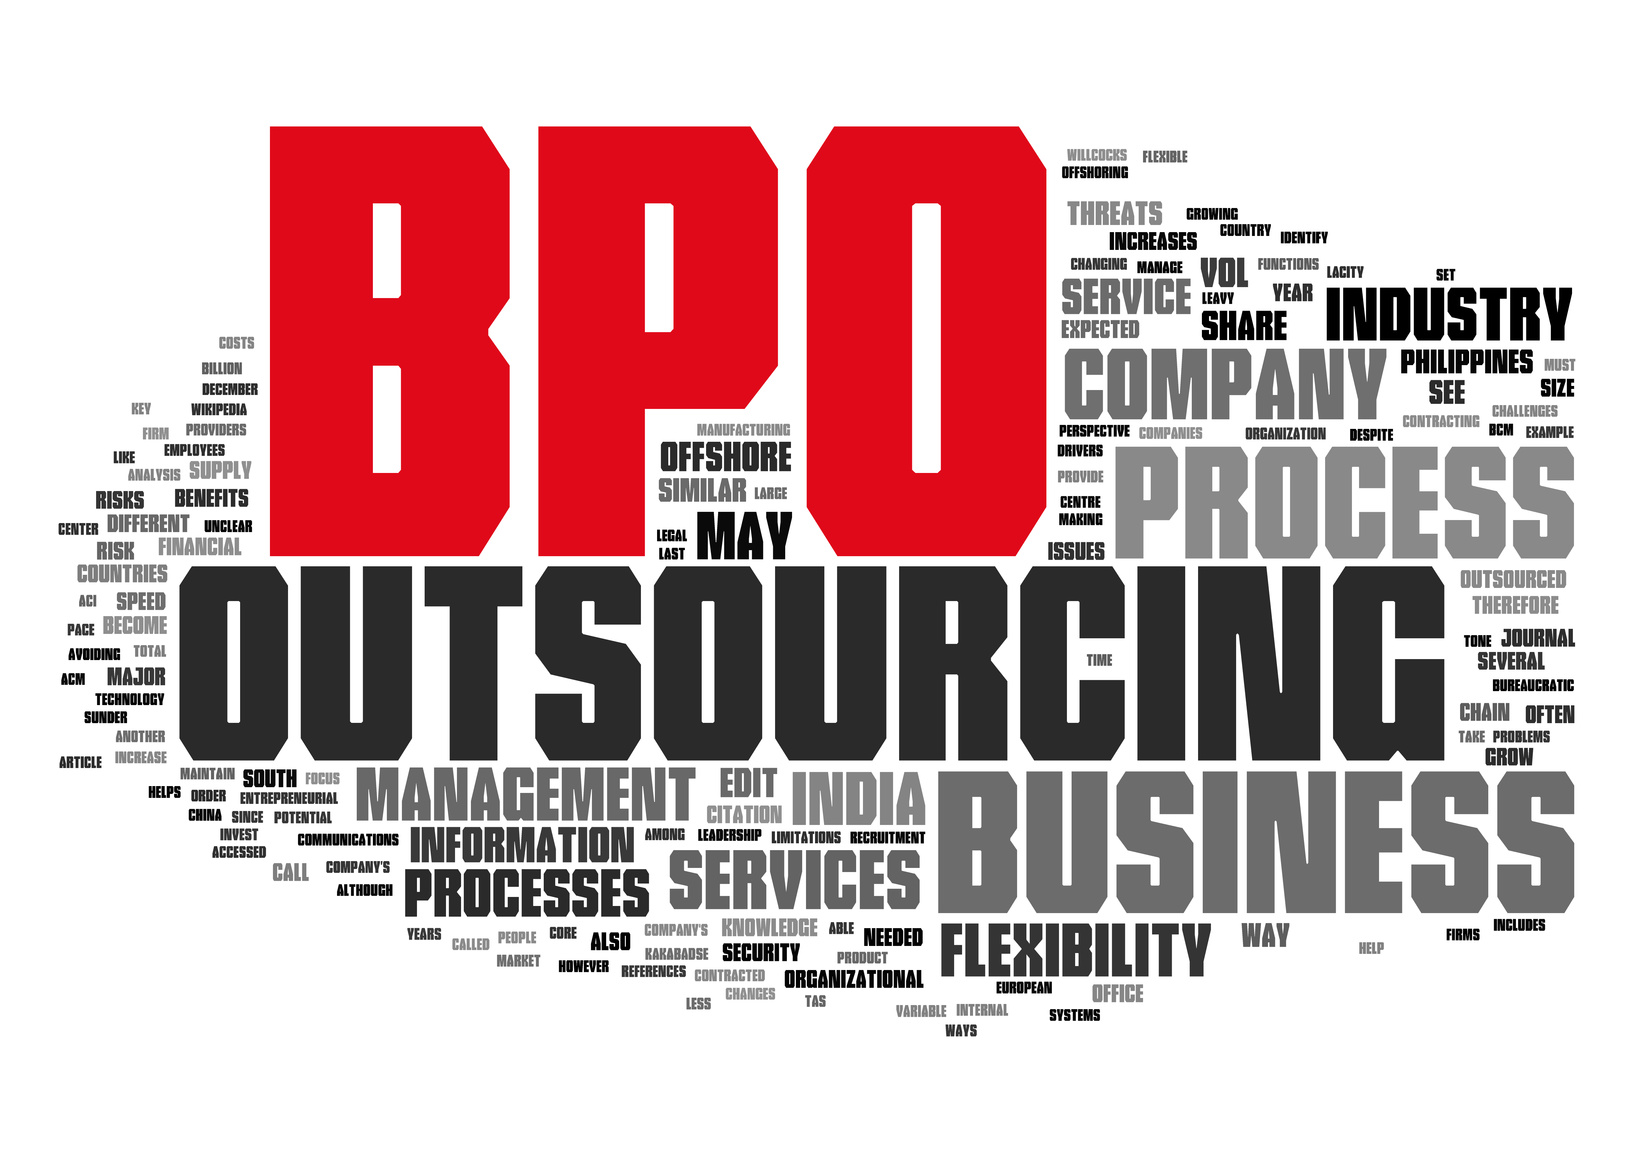 At Your Service: The Top 7 Desirable Countries in Asia for Business Process Outsourcing